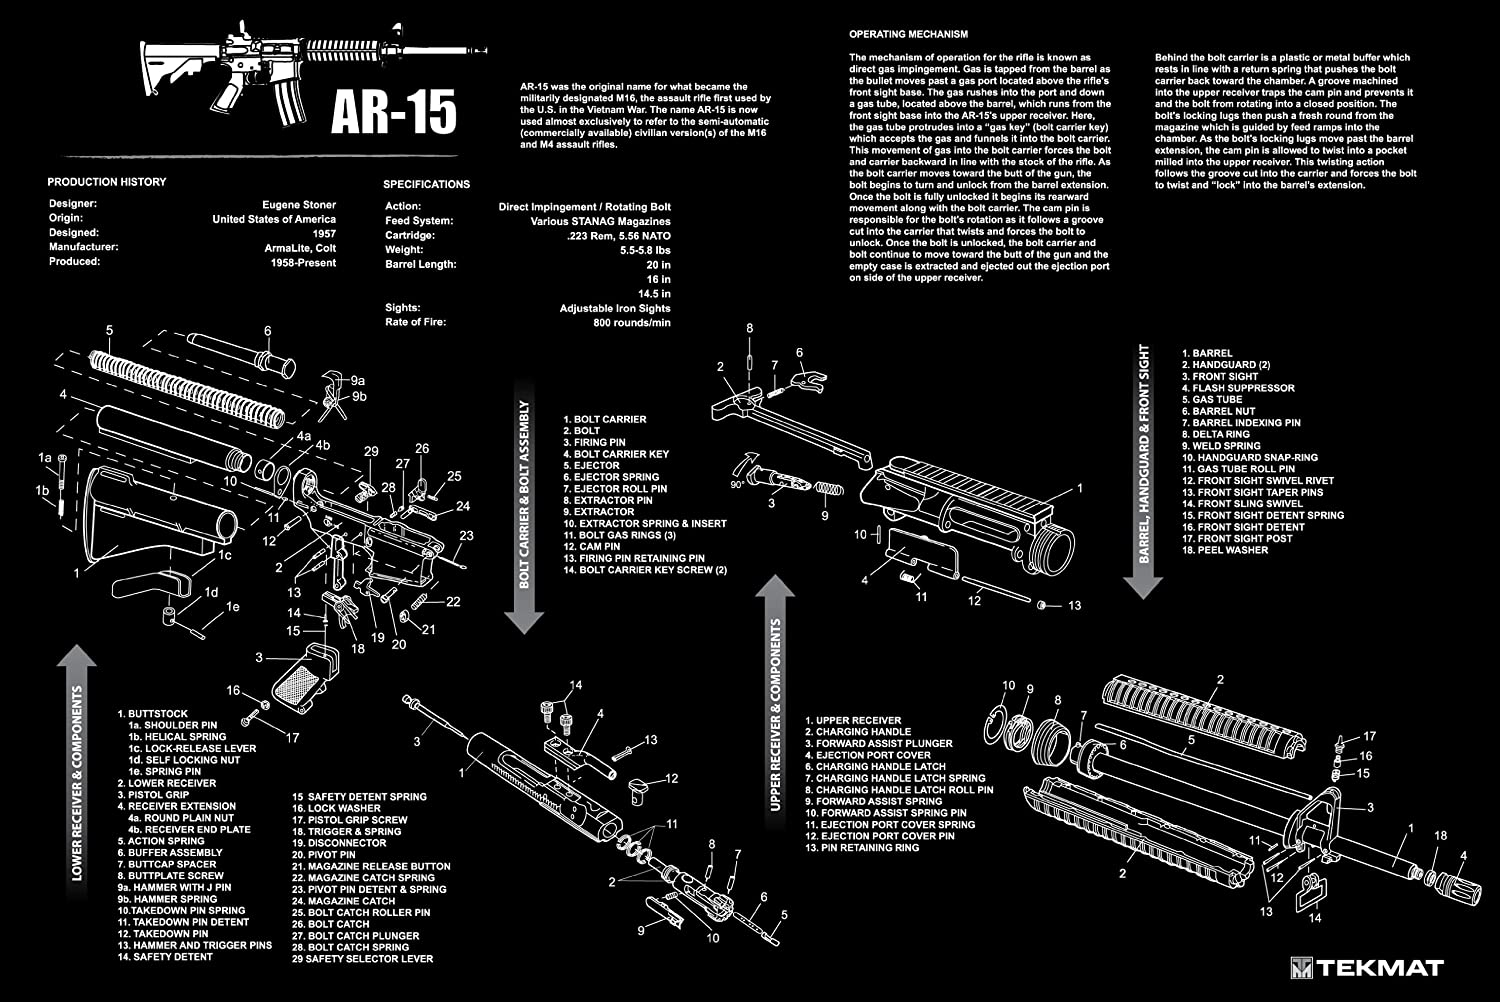 amazon ultimate arms gear ar15 ar 15 ar 15 m4 m16 gunsmith  : ar15 parts diagram - findchart.co